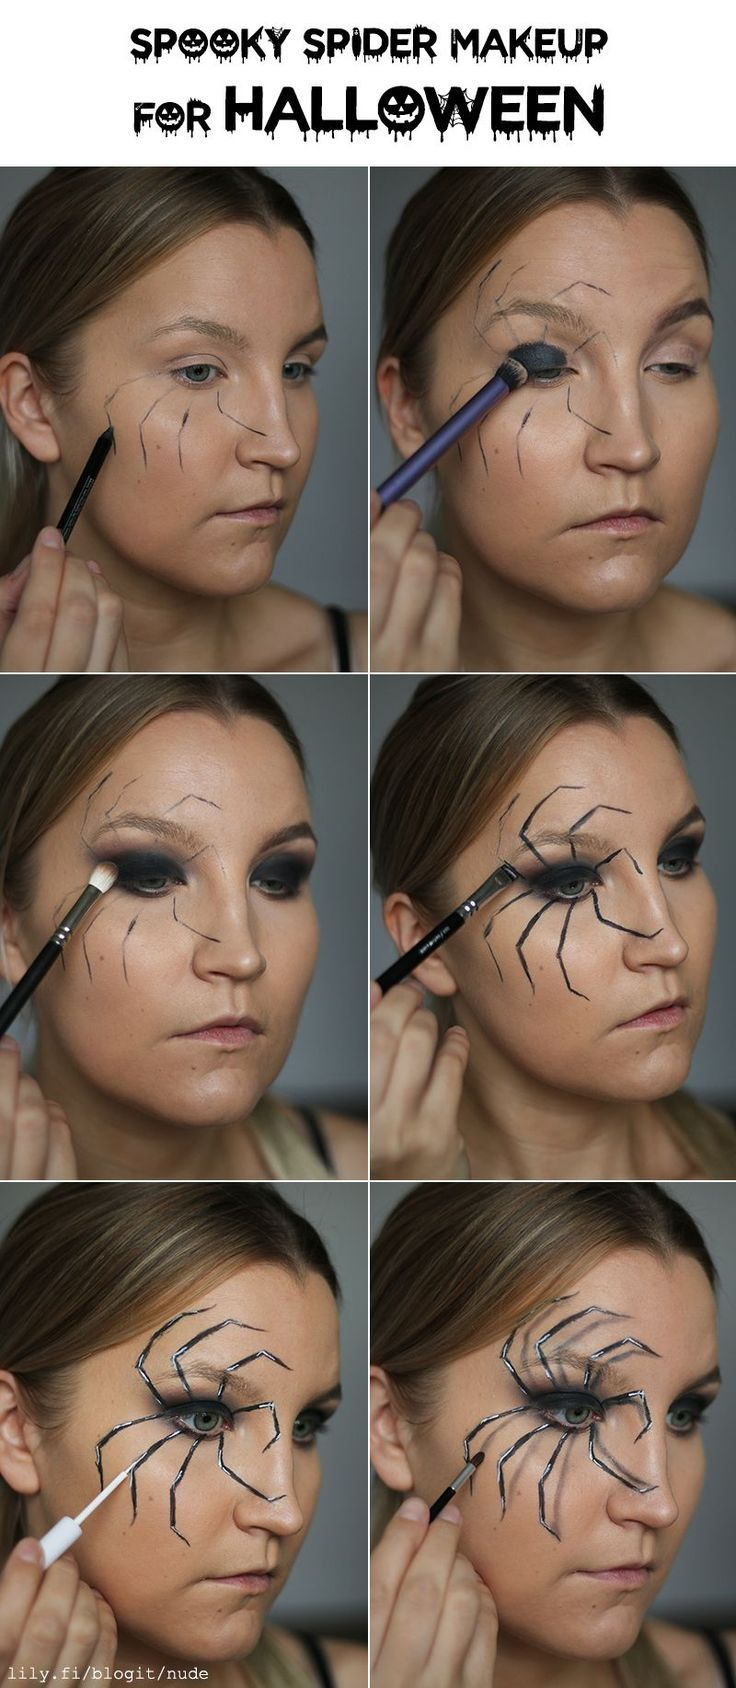 Alles Voor Halloween.Easy Spider Makeup For Halloween All You Need Is Black And White Eyeliner Blac Easy Spider Makeup Cute Halloween Makeup Halloween Makeup Looks Spider Makeup